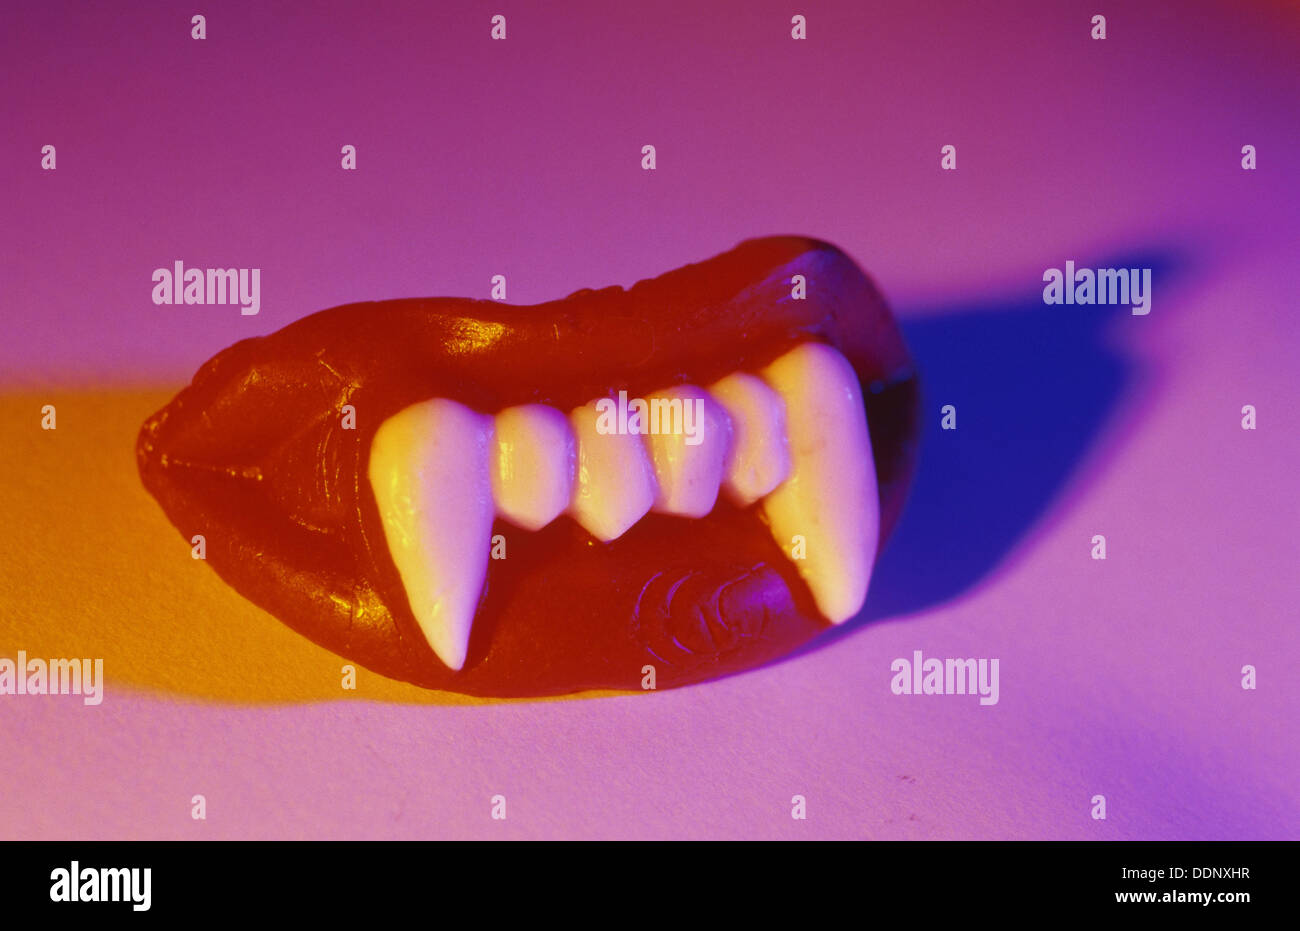 Vampire Teeth Stock Photos & Vampire Teeth Stock Images - Alamy